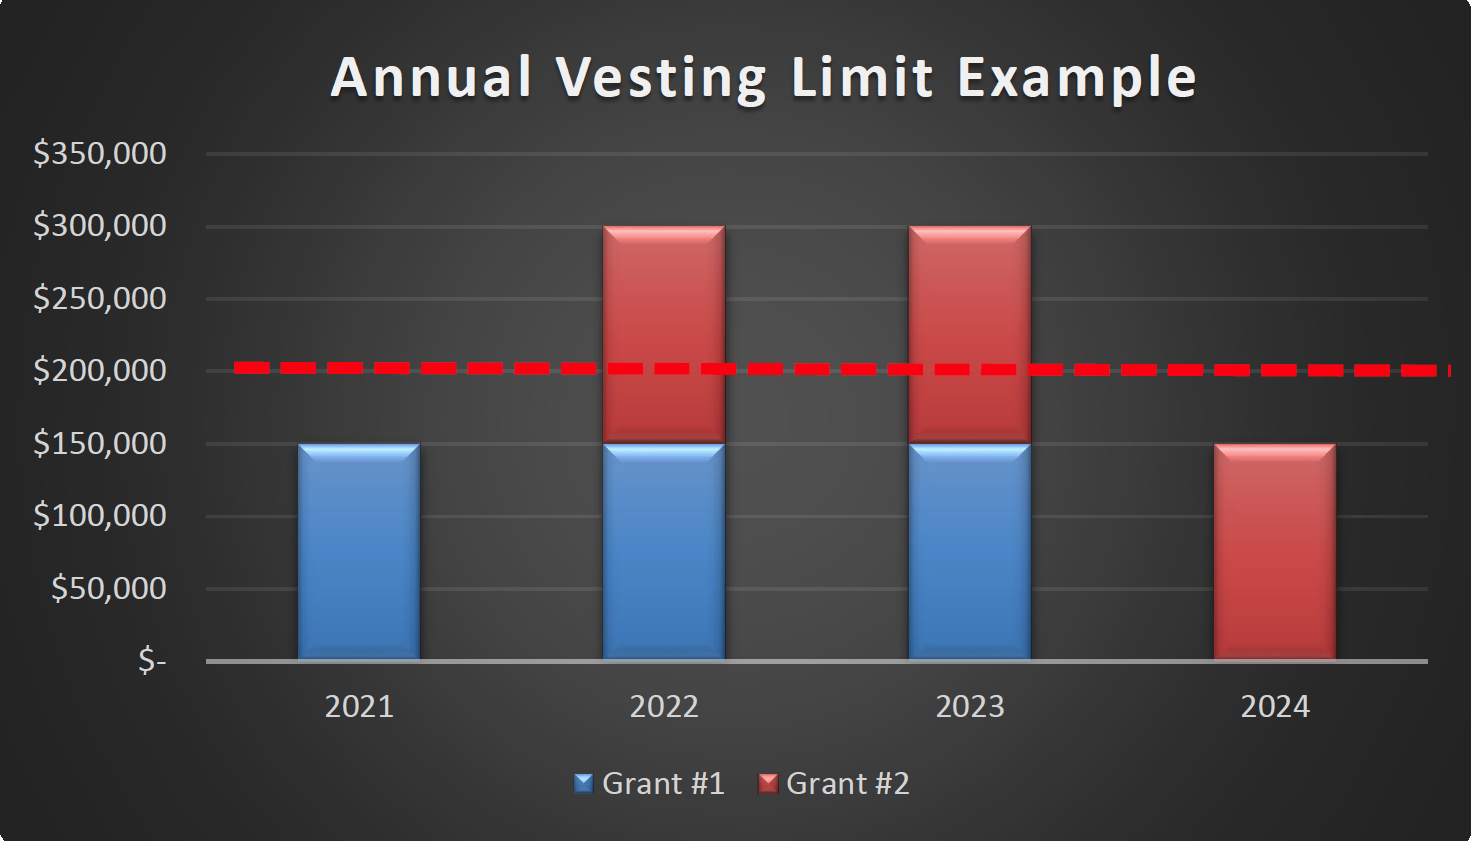 EY - Annual Vesting Limit Example chart